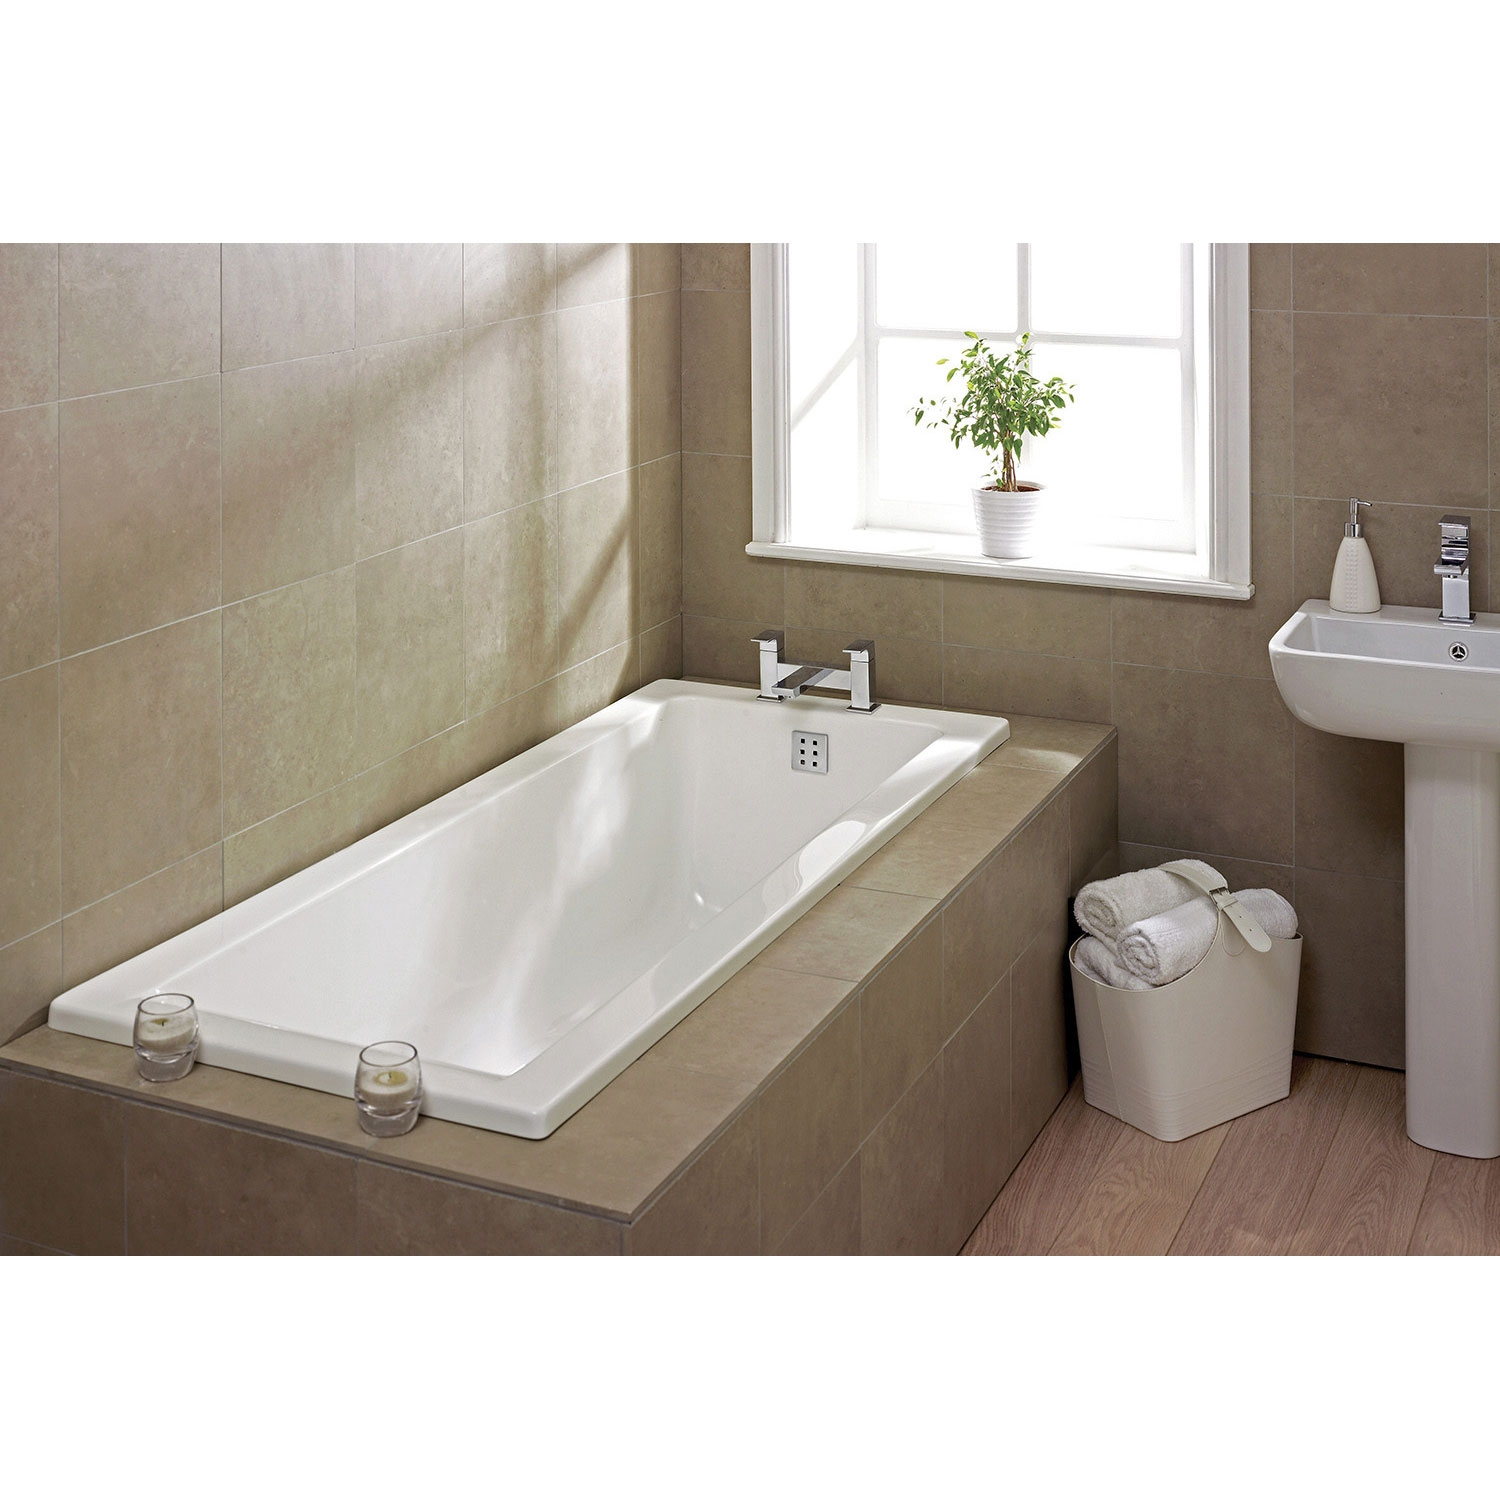 Verona Atlanta Single Ended Rectangular Tungstenite Bath 1400mm x 700mm - 0 Tap Hole